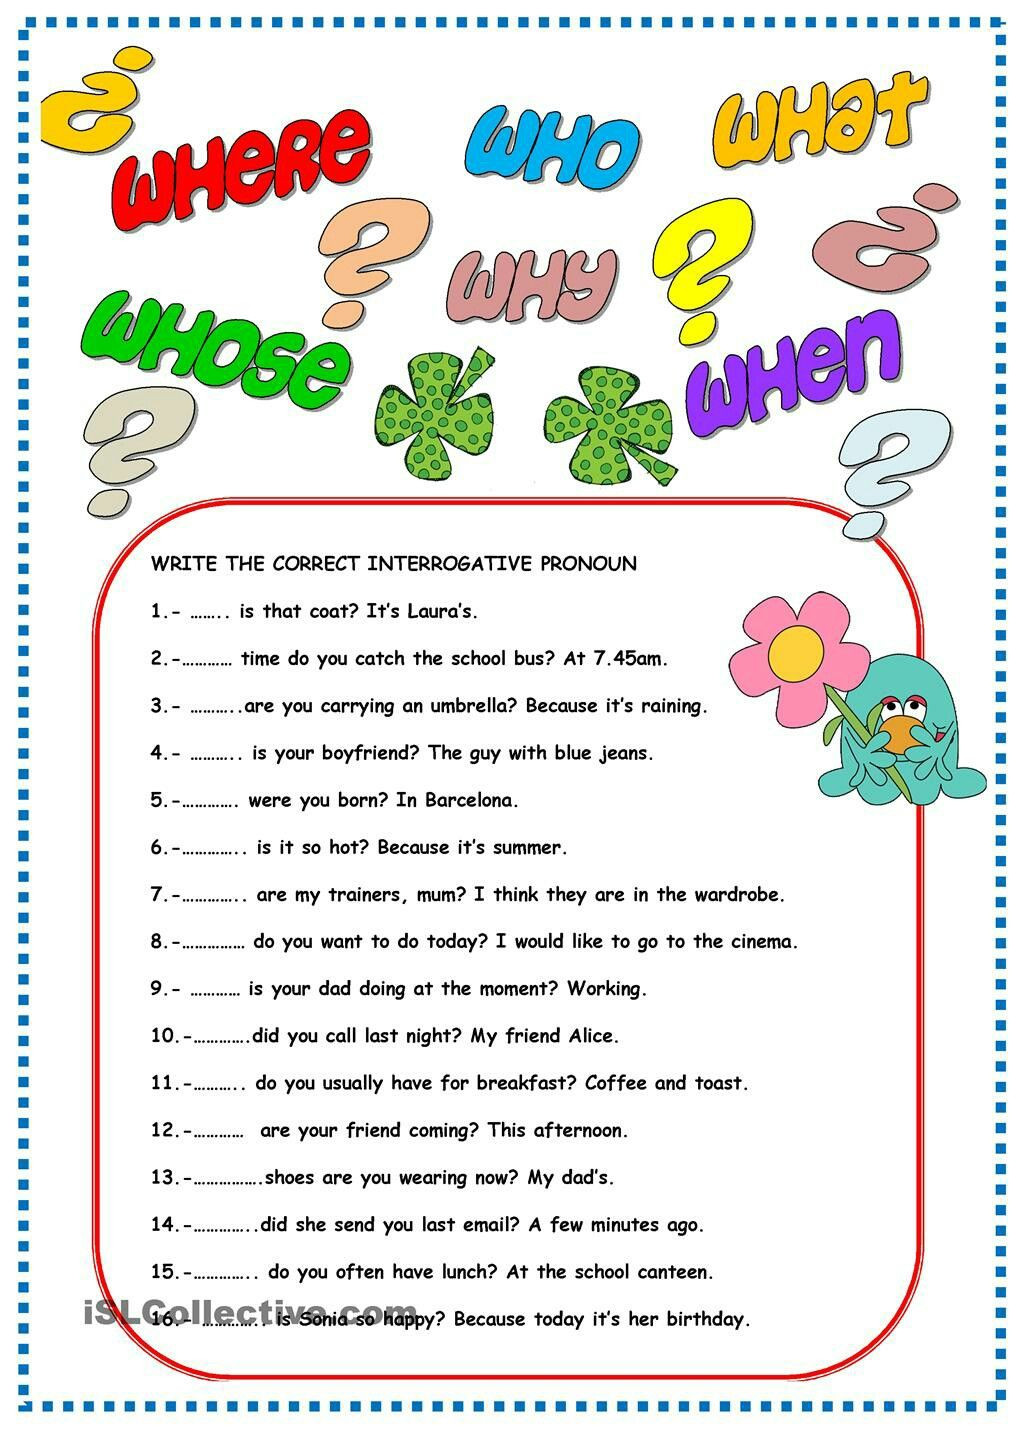 Pronoun Worksheet for 2nd Grade Interrogative Pronouns